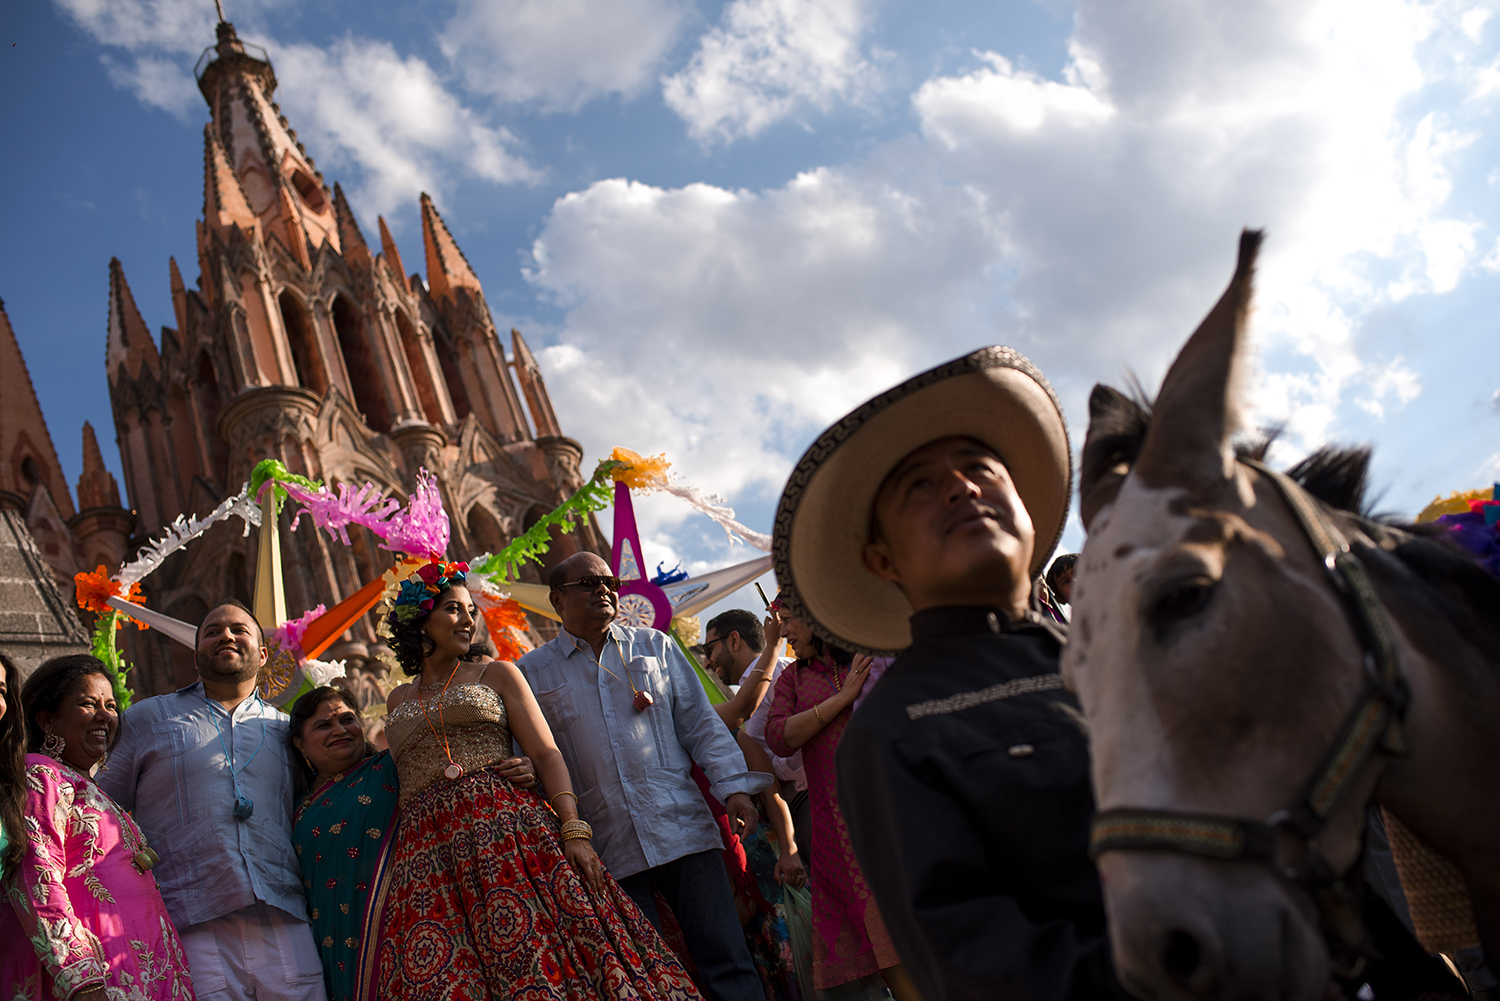 indian_wedding_san_miguel_de_allende_chio_garcia_photographer (5).jpg